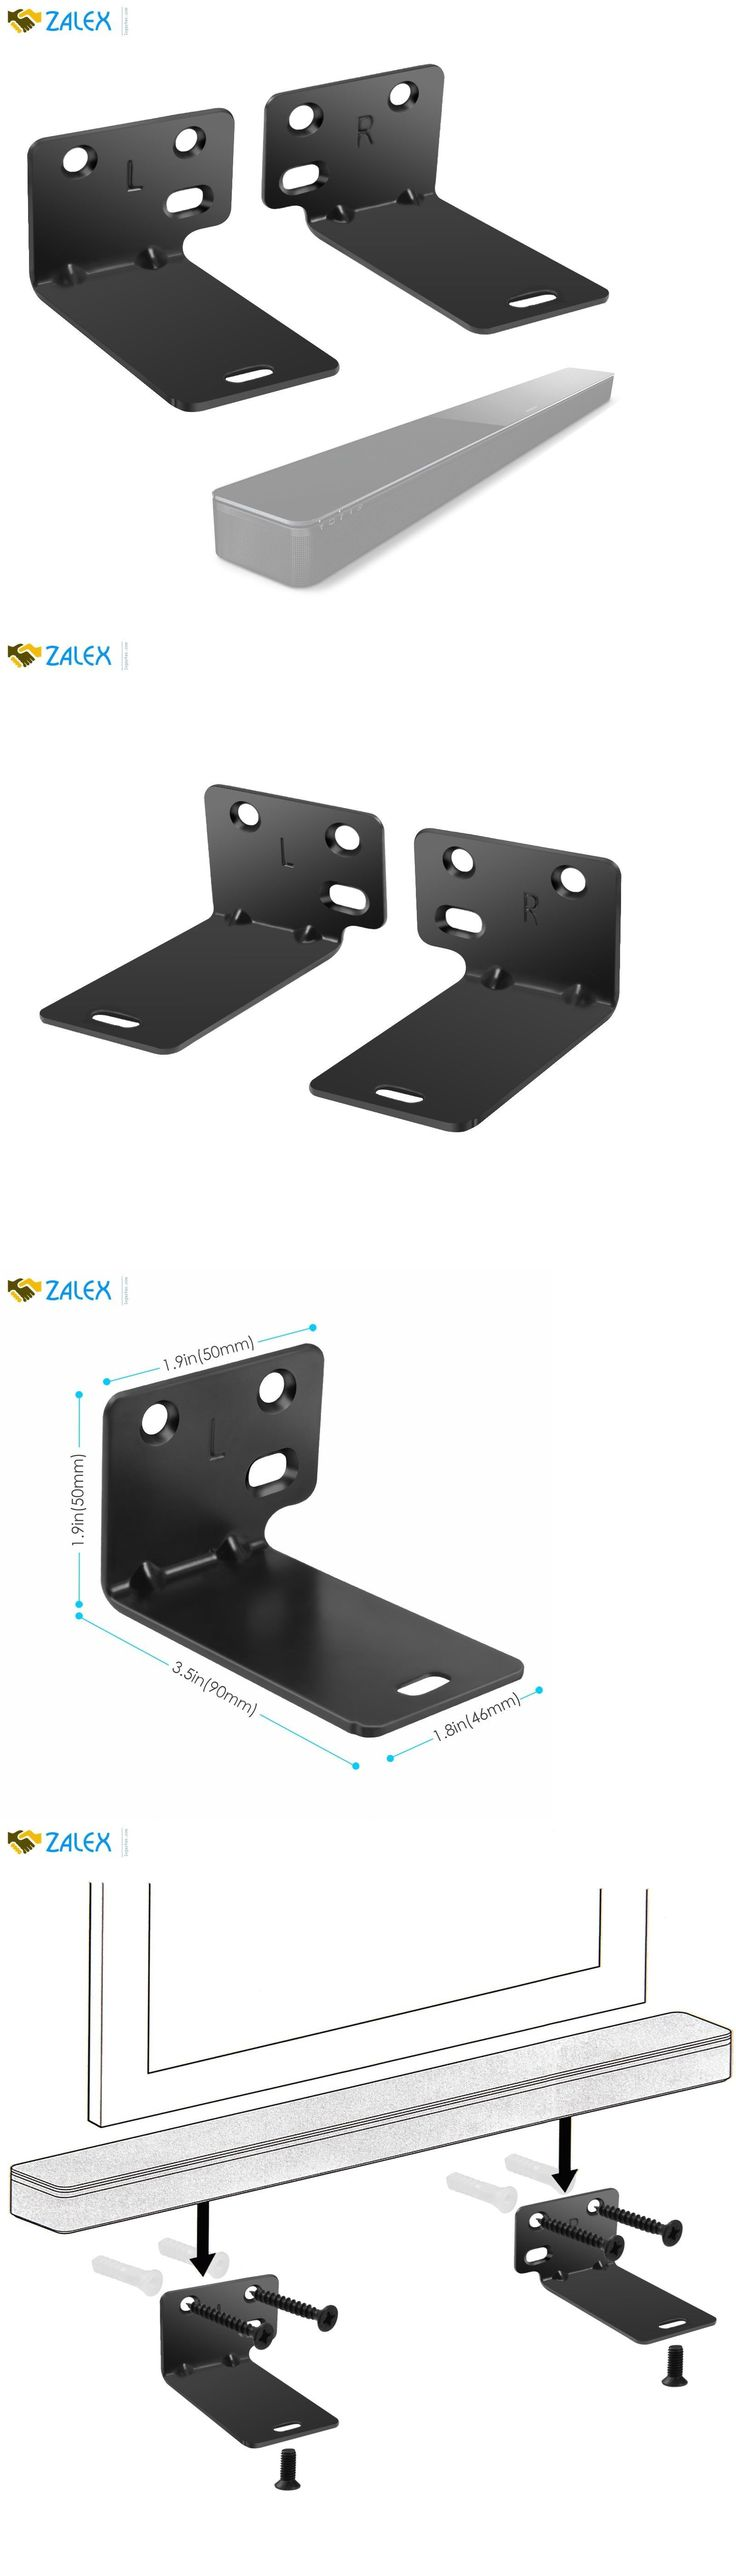 Speaker Mounts and Stands: Steel Wall Bracket For Bose Wb-300 Sound Touch 300 Soundbar Speaker Black New -> BUY IT NOW ONLY: $33.48 on eBay!